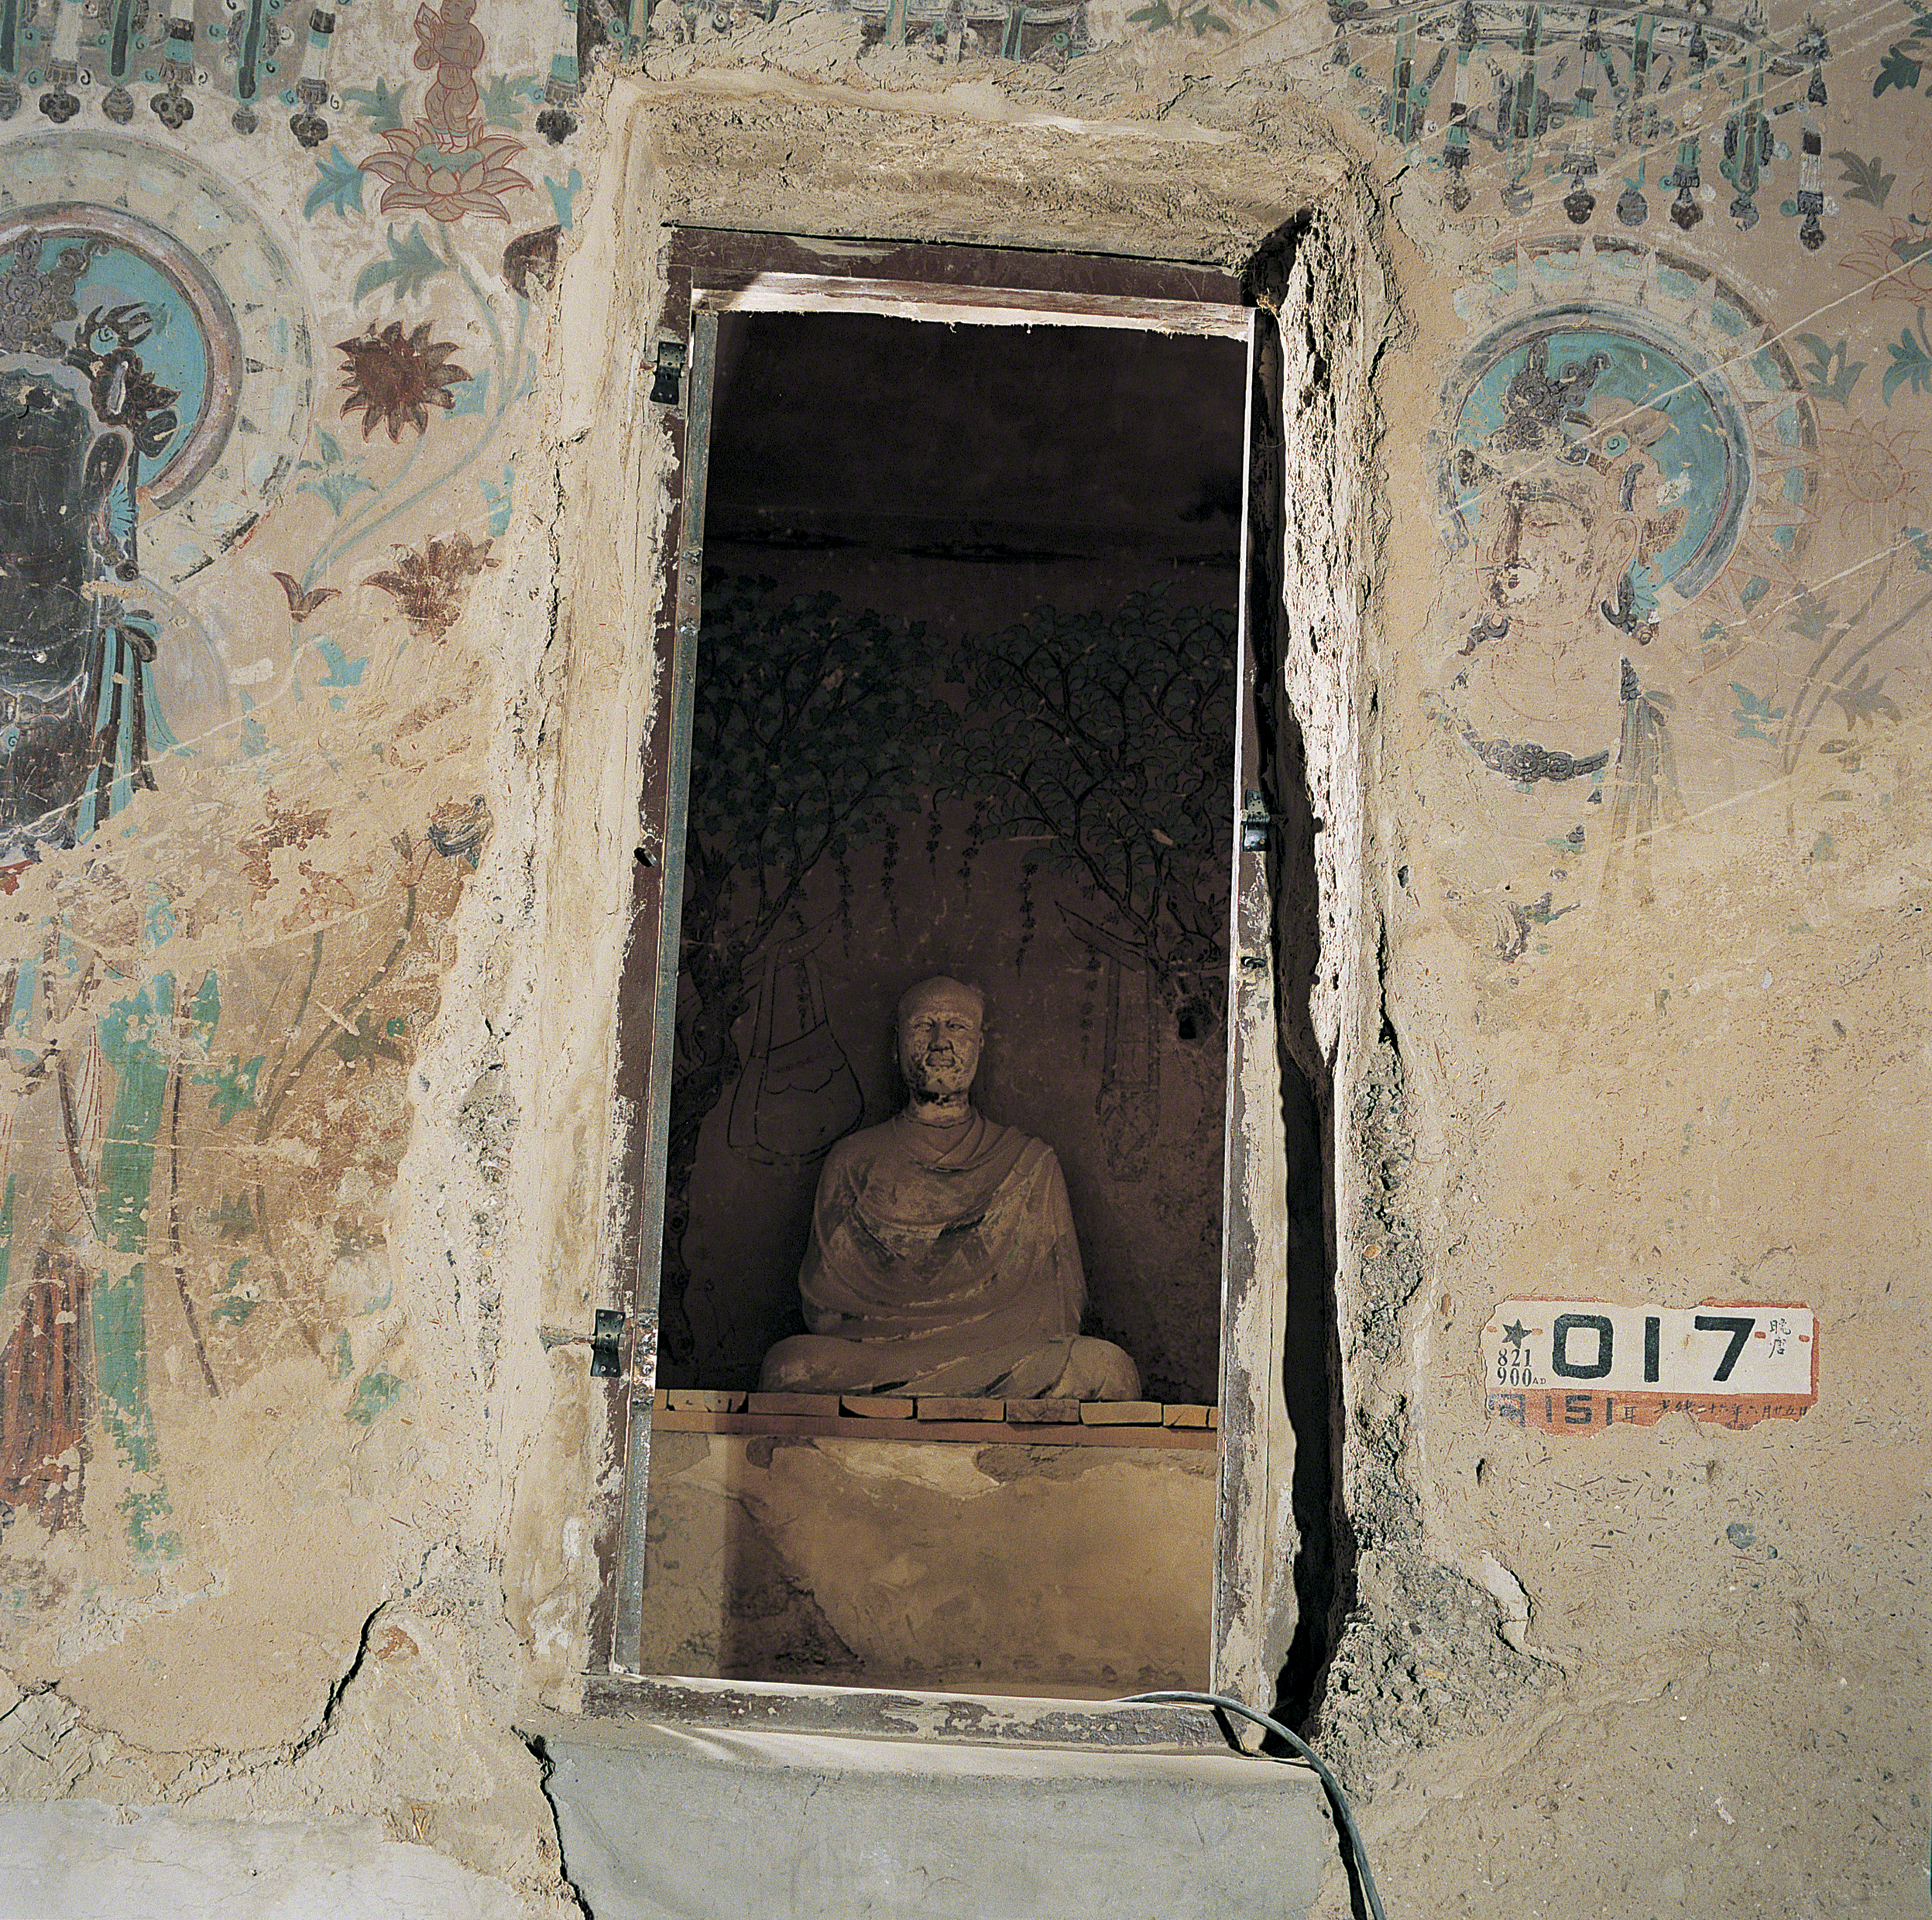 Mogao Cave 17.Late Tang, 848-907 CE. Dunhuang. Image courtesy of the Dunhuang Academy.